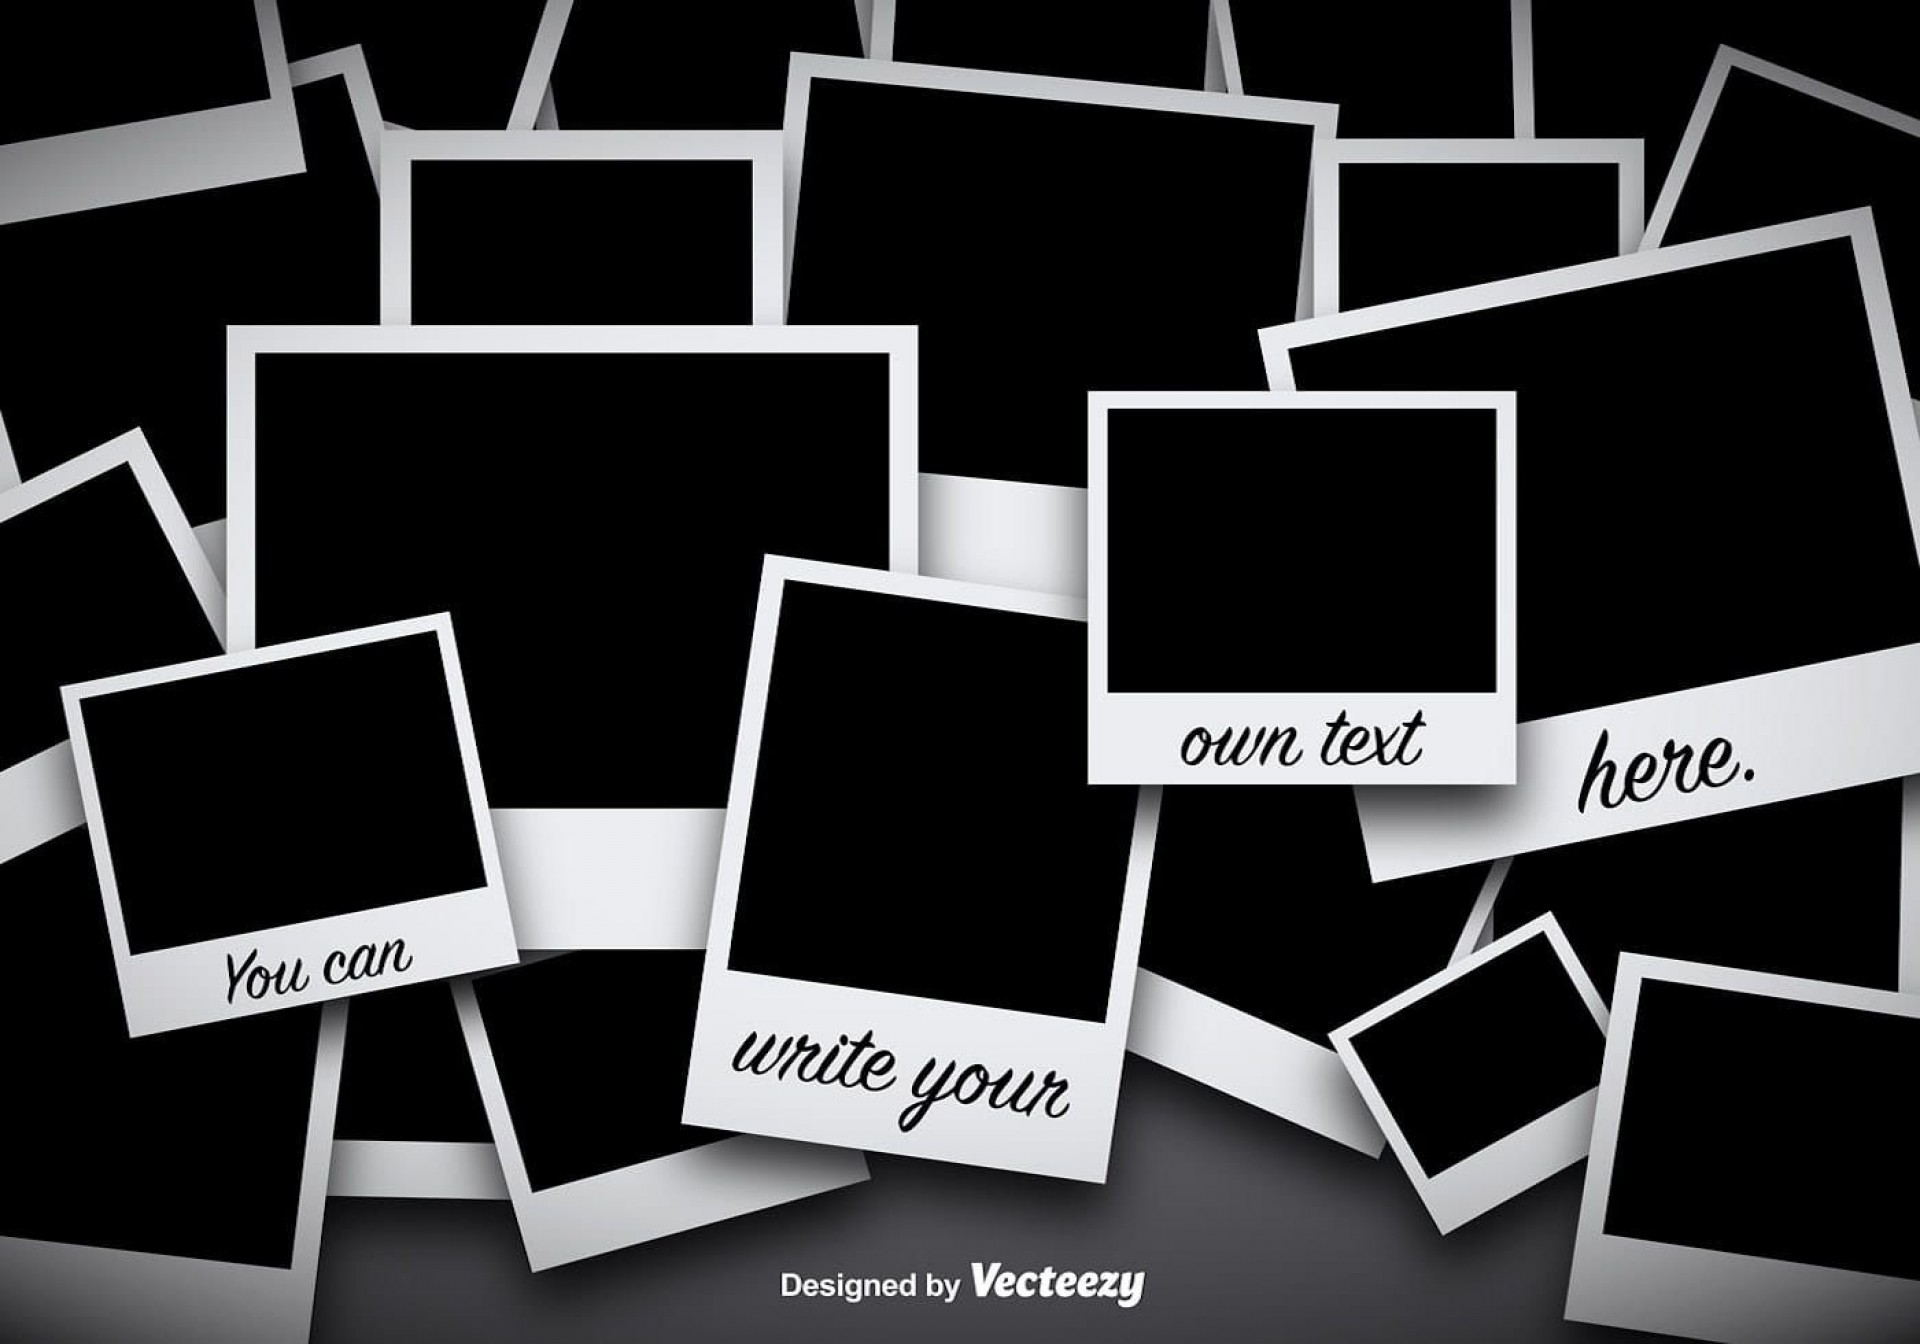 008 Impressive Free Photo Collage Template Download Picture  Psd Powerpoint1920